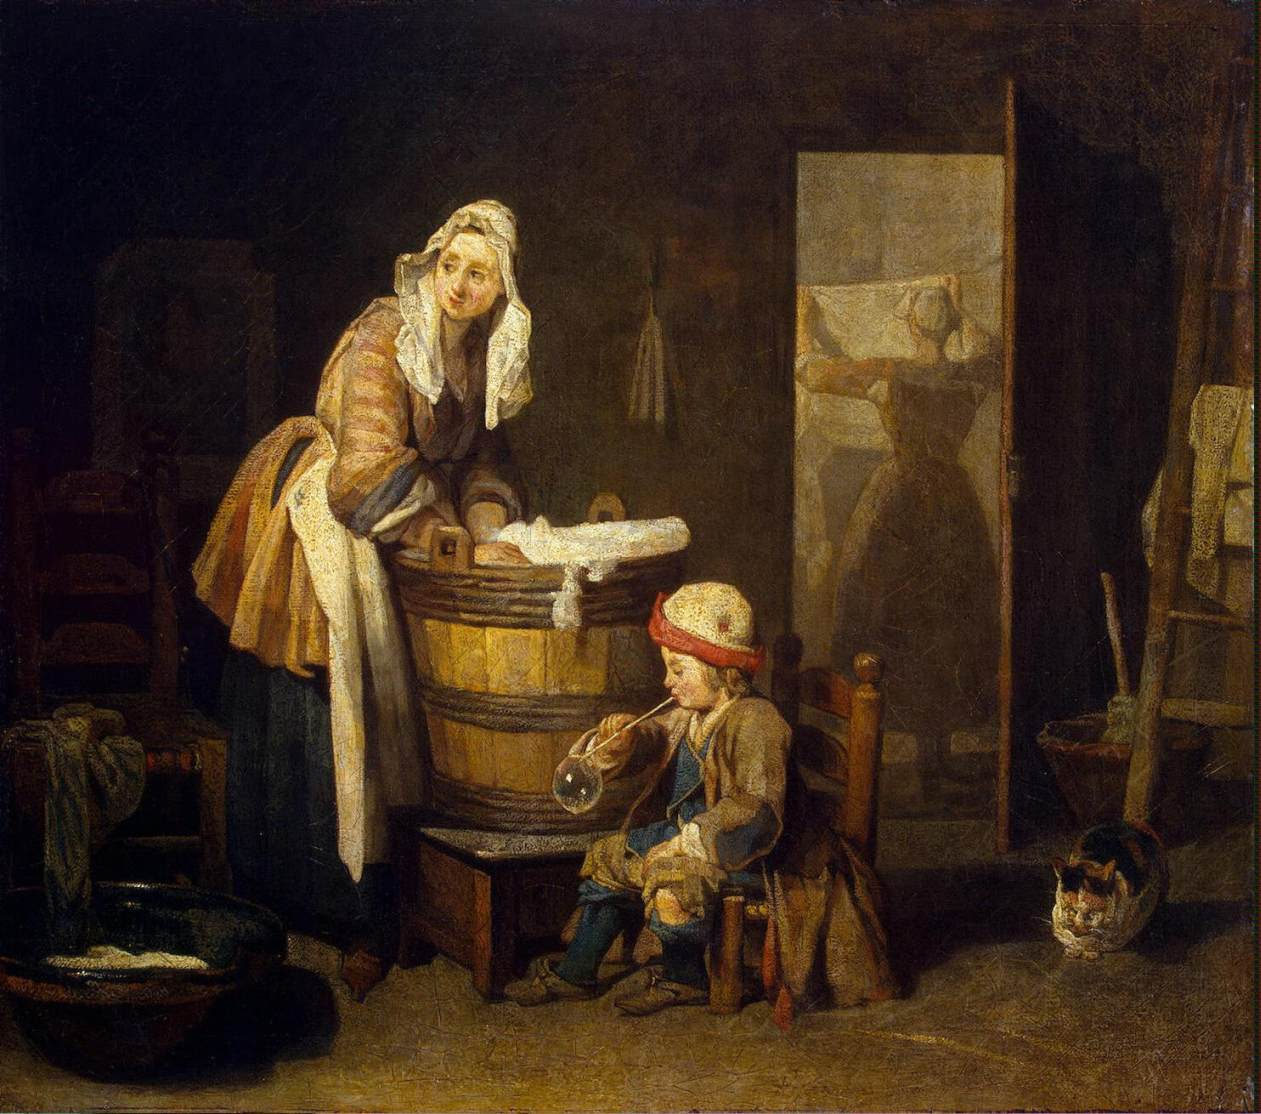 laundress - chardin - 1730 - HandBound - Eighteenth Century historical Costume - Researching the rococo - Georgian everyday wear - Historcial 1700's, 18th cent clothin - Plebiean and working womens' costume - did women in the 1700's wear stays